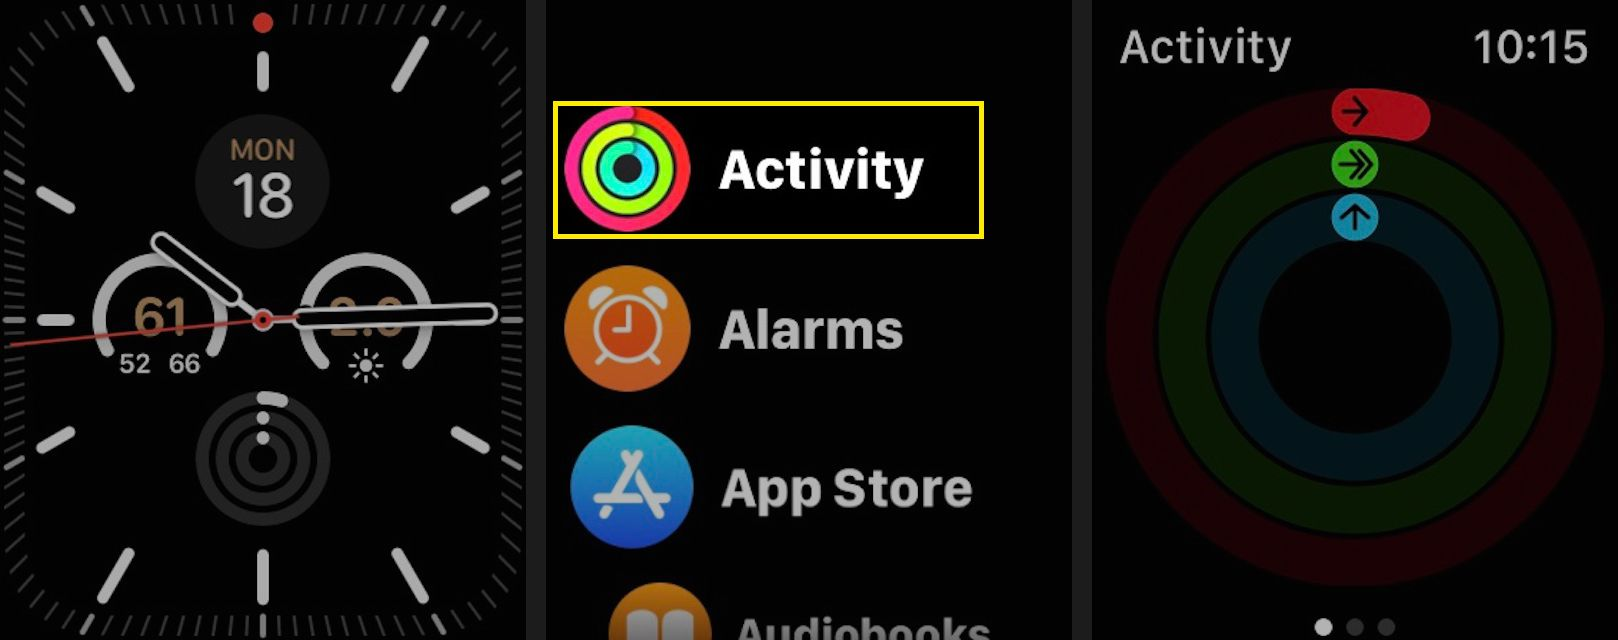 Launch the Activity app on your Apple Watch. (The app icon shows three rings.)